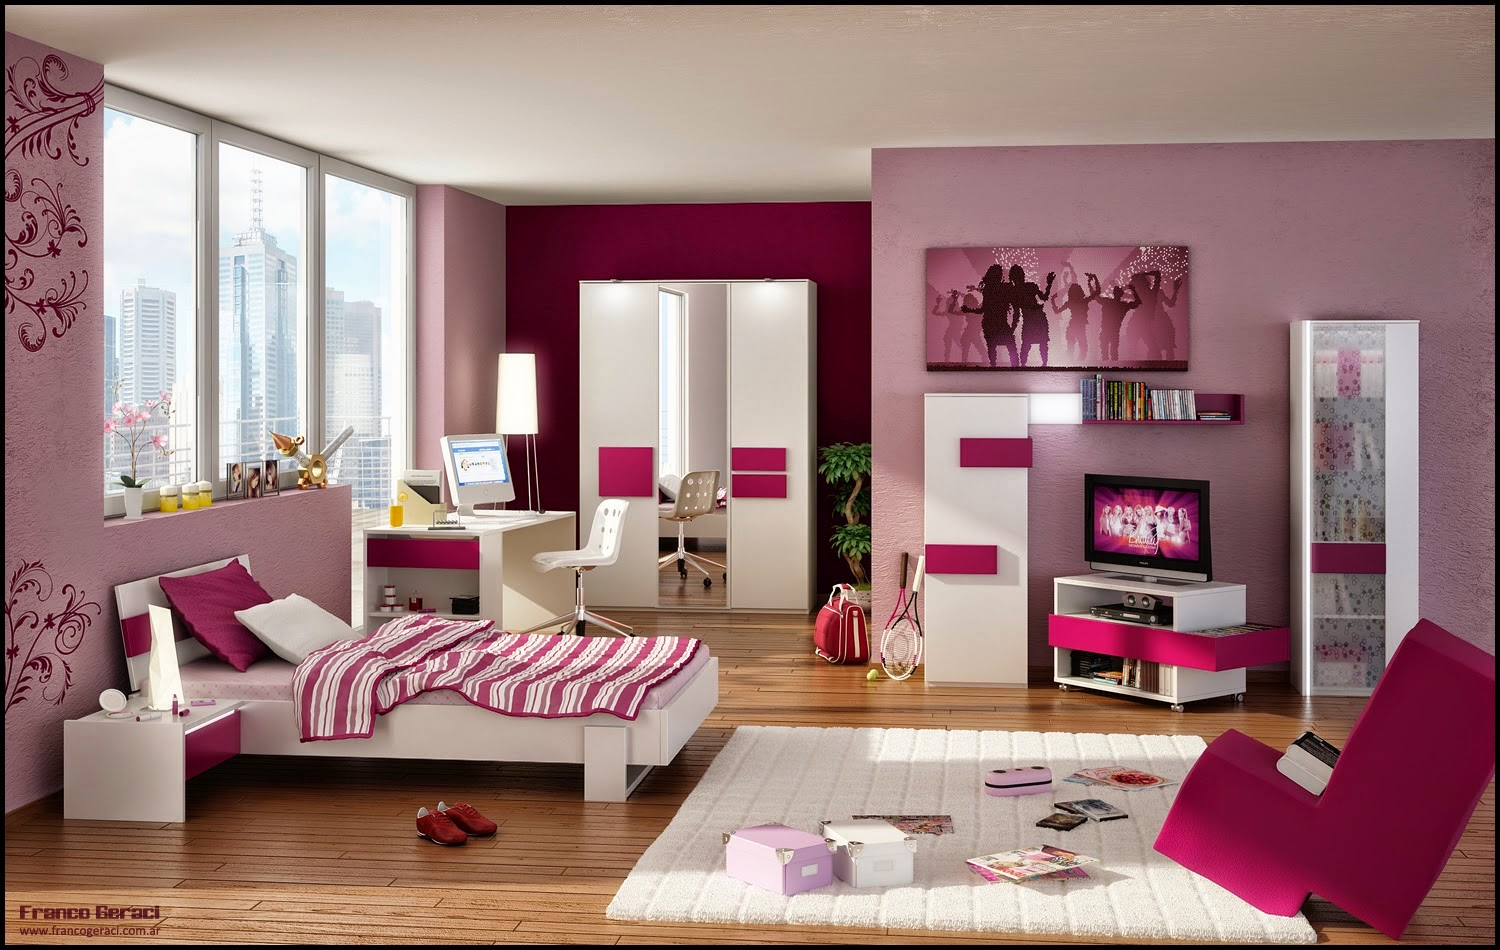 conseil peinture chambre fille id es d co pour maison moderne. Black Bedroom Furniture Sets. Home Design Ideas